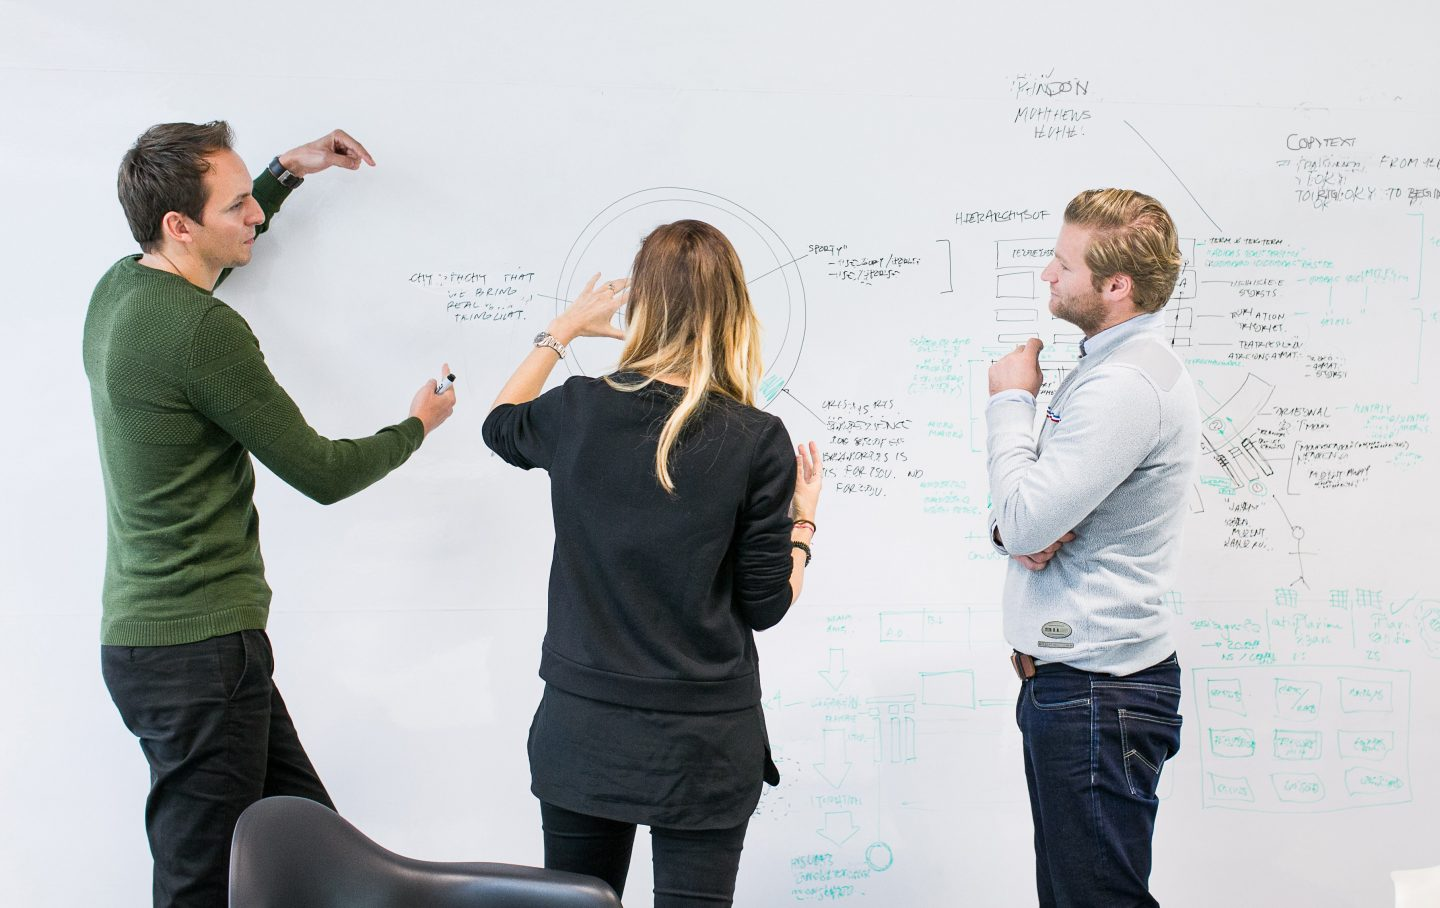 Three colleagues doing a brainstorming in front of a big whiteboard. Whiteboard-work situation-brainstorming-adidas-Comfort Zone, GamePlan A